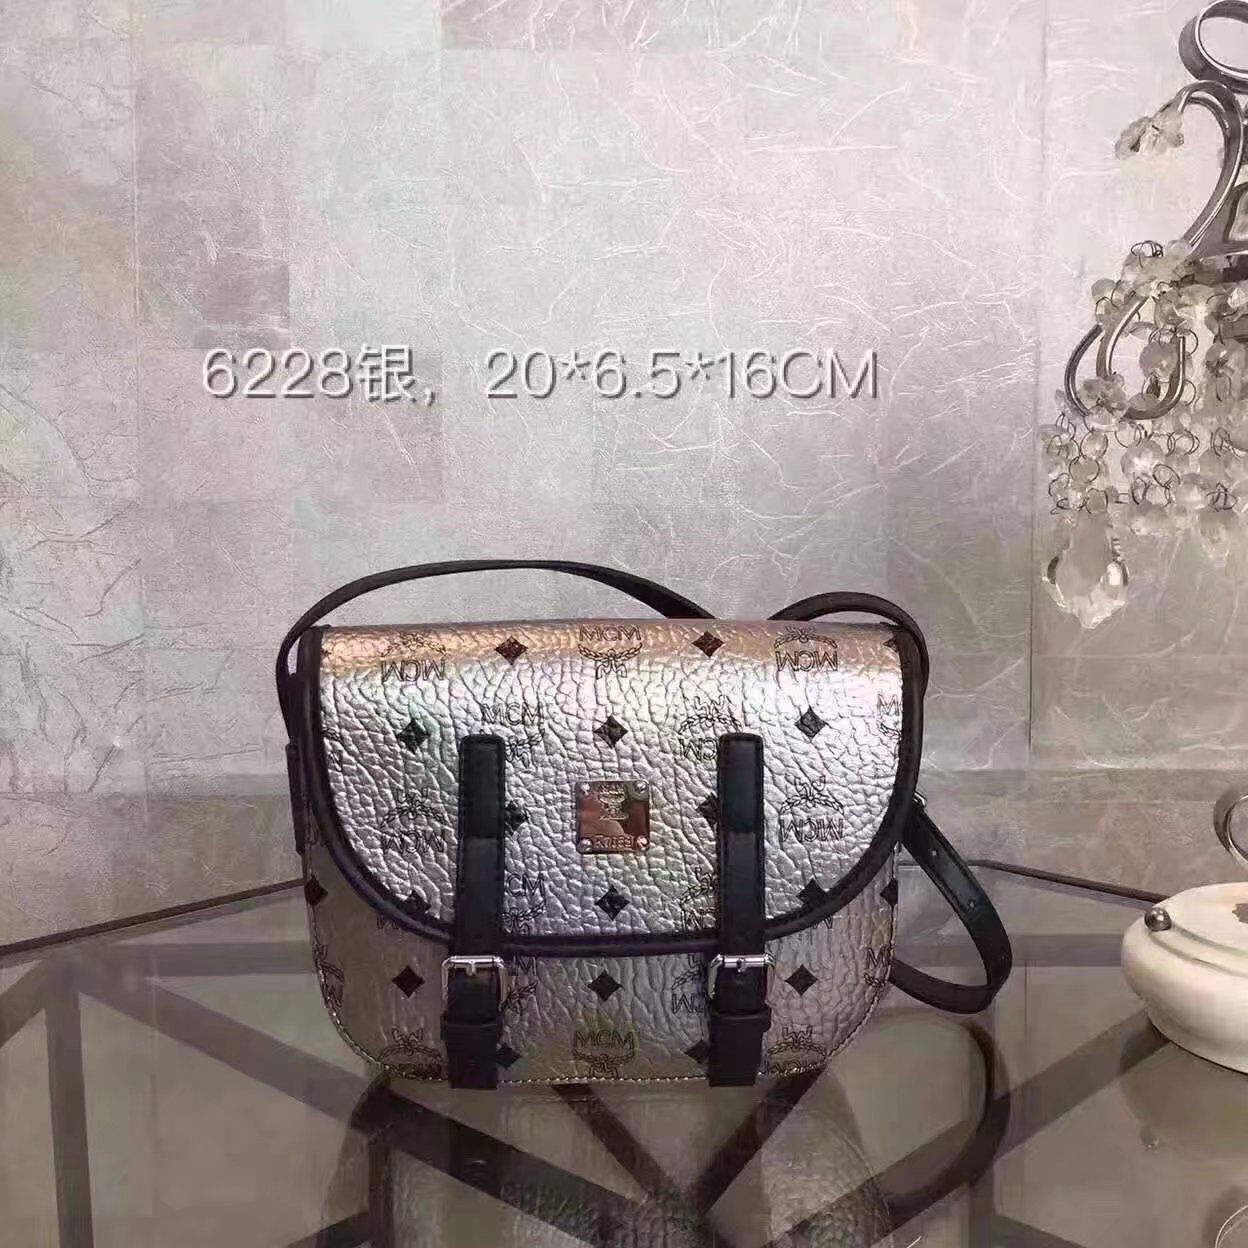 MCM 6228 Small Shoulder Bag Silver